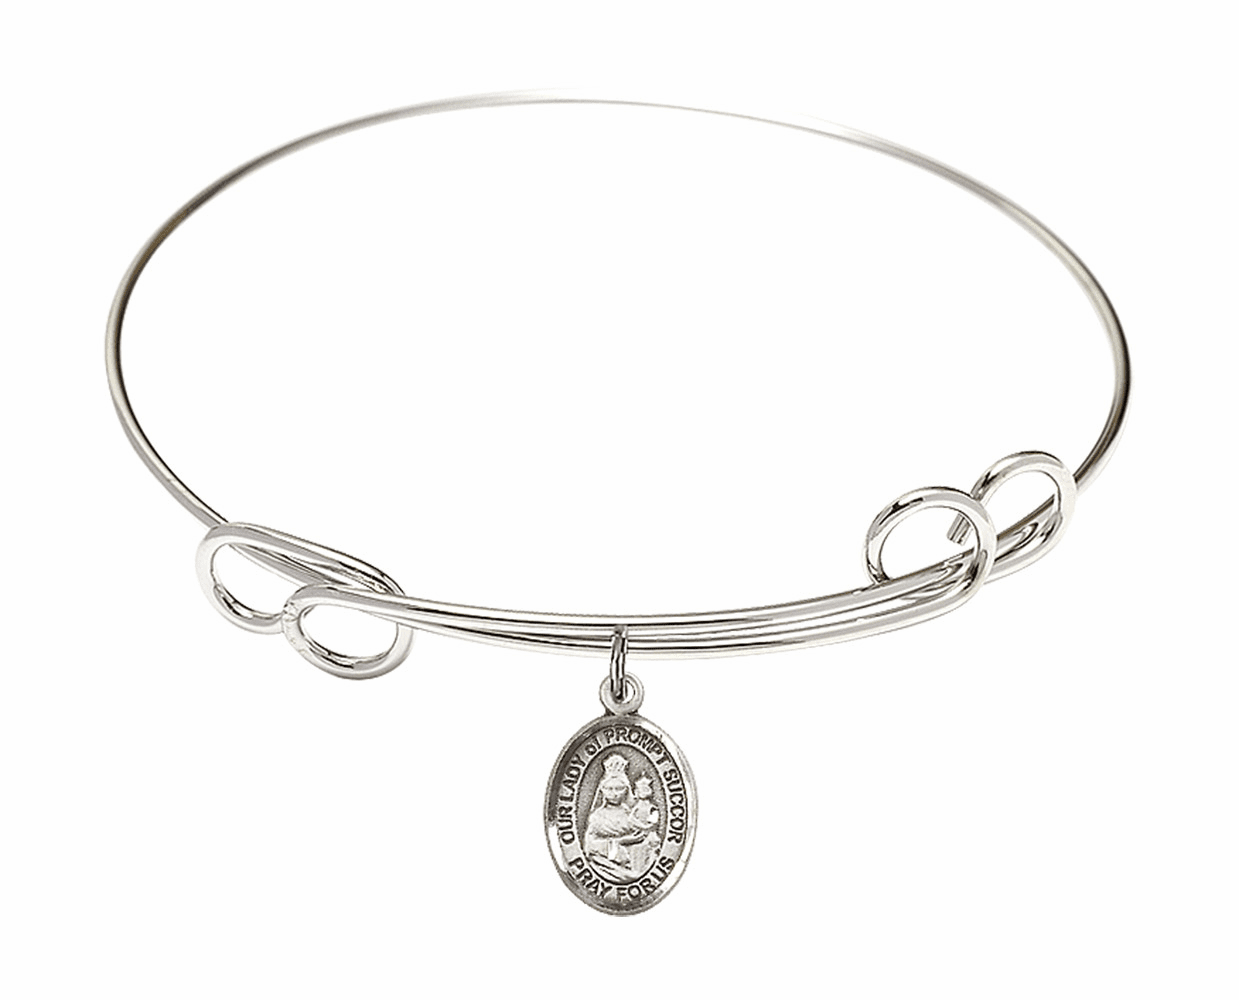 Round Loop Our Lady of Prompt Succor Bangle Charm Bracelet by Bliss